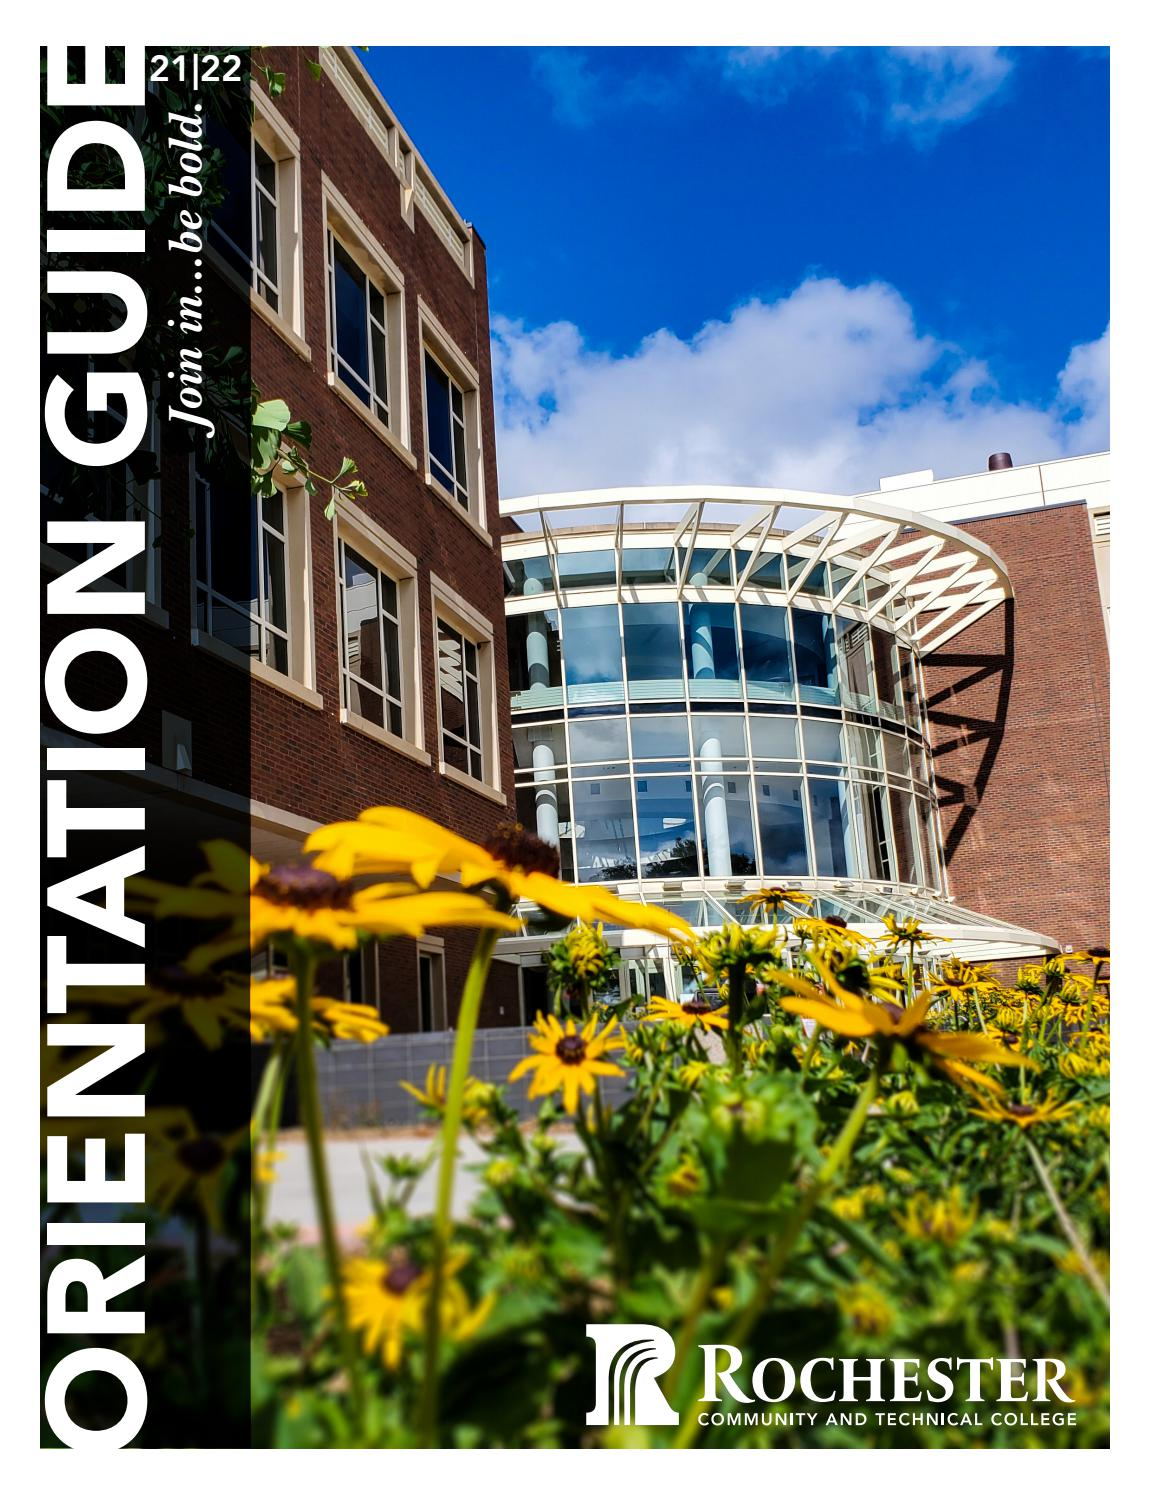 University Of Rochester Academic Calendar 2022.2021 2022 Rctc Orientation Guide By Rochester Community And Technical College Issuu